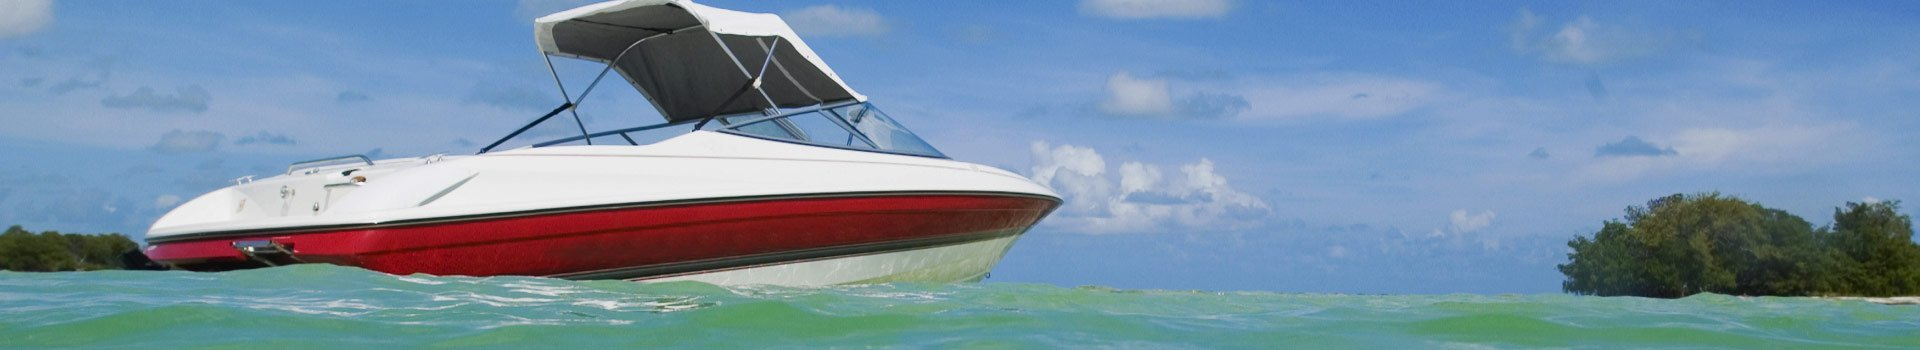 callaghans marine services current sales and promotions hero image